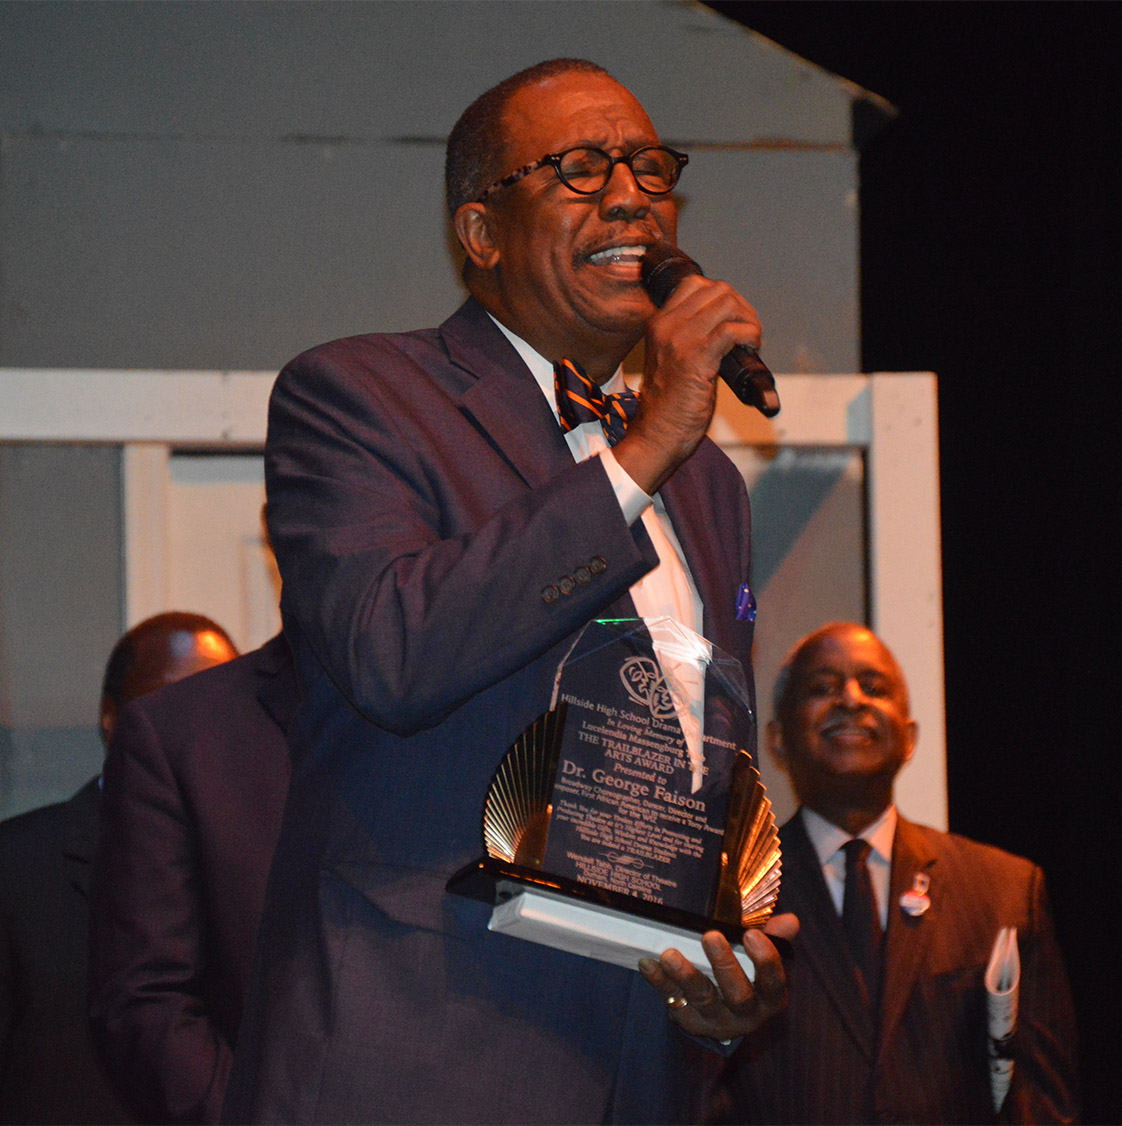 George Faison, the first African American to win a Tony award for choreography in The Wiz in 1975, attended the show and received the Trailblazer in the Arts Award from the Hillside High School Drama Department. (Staff photo by Meredith Wilson)